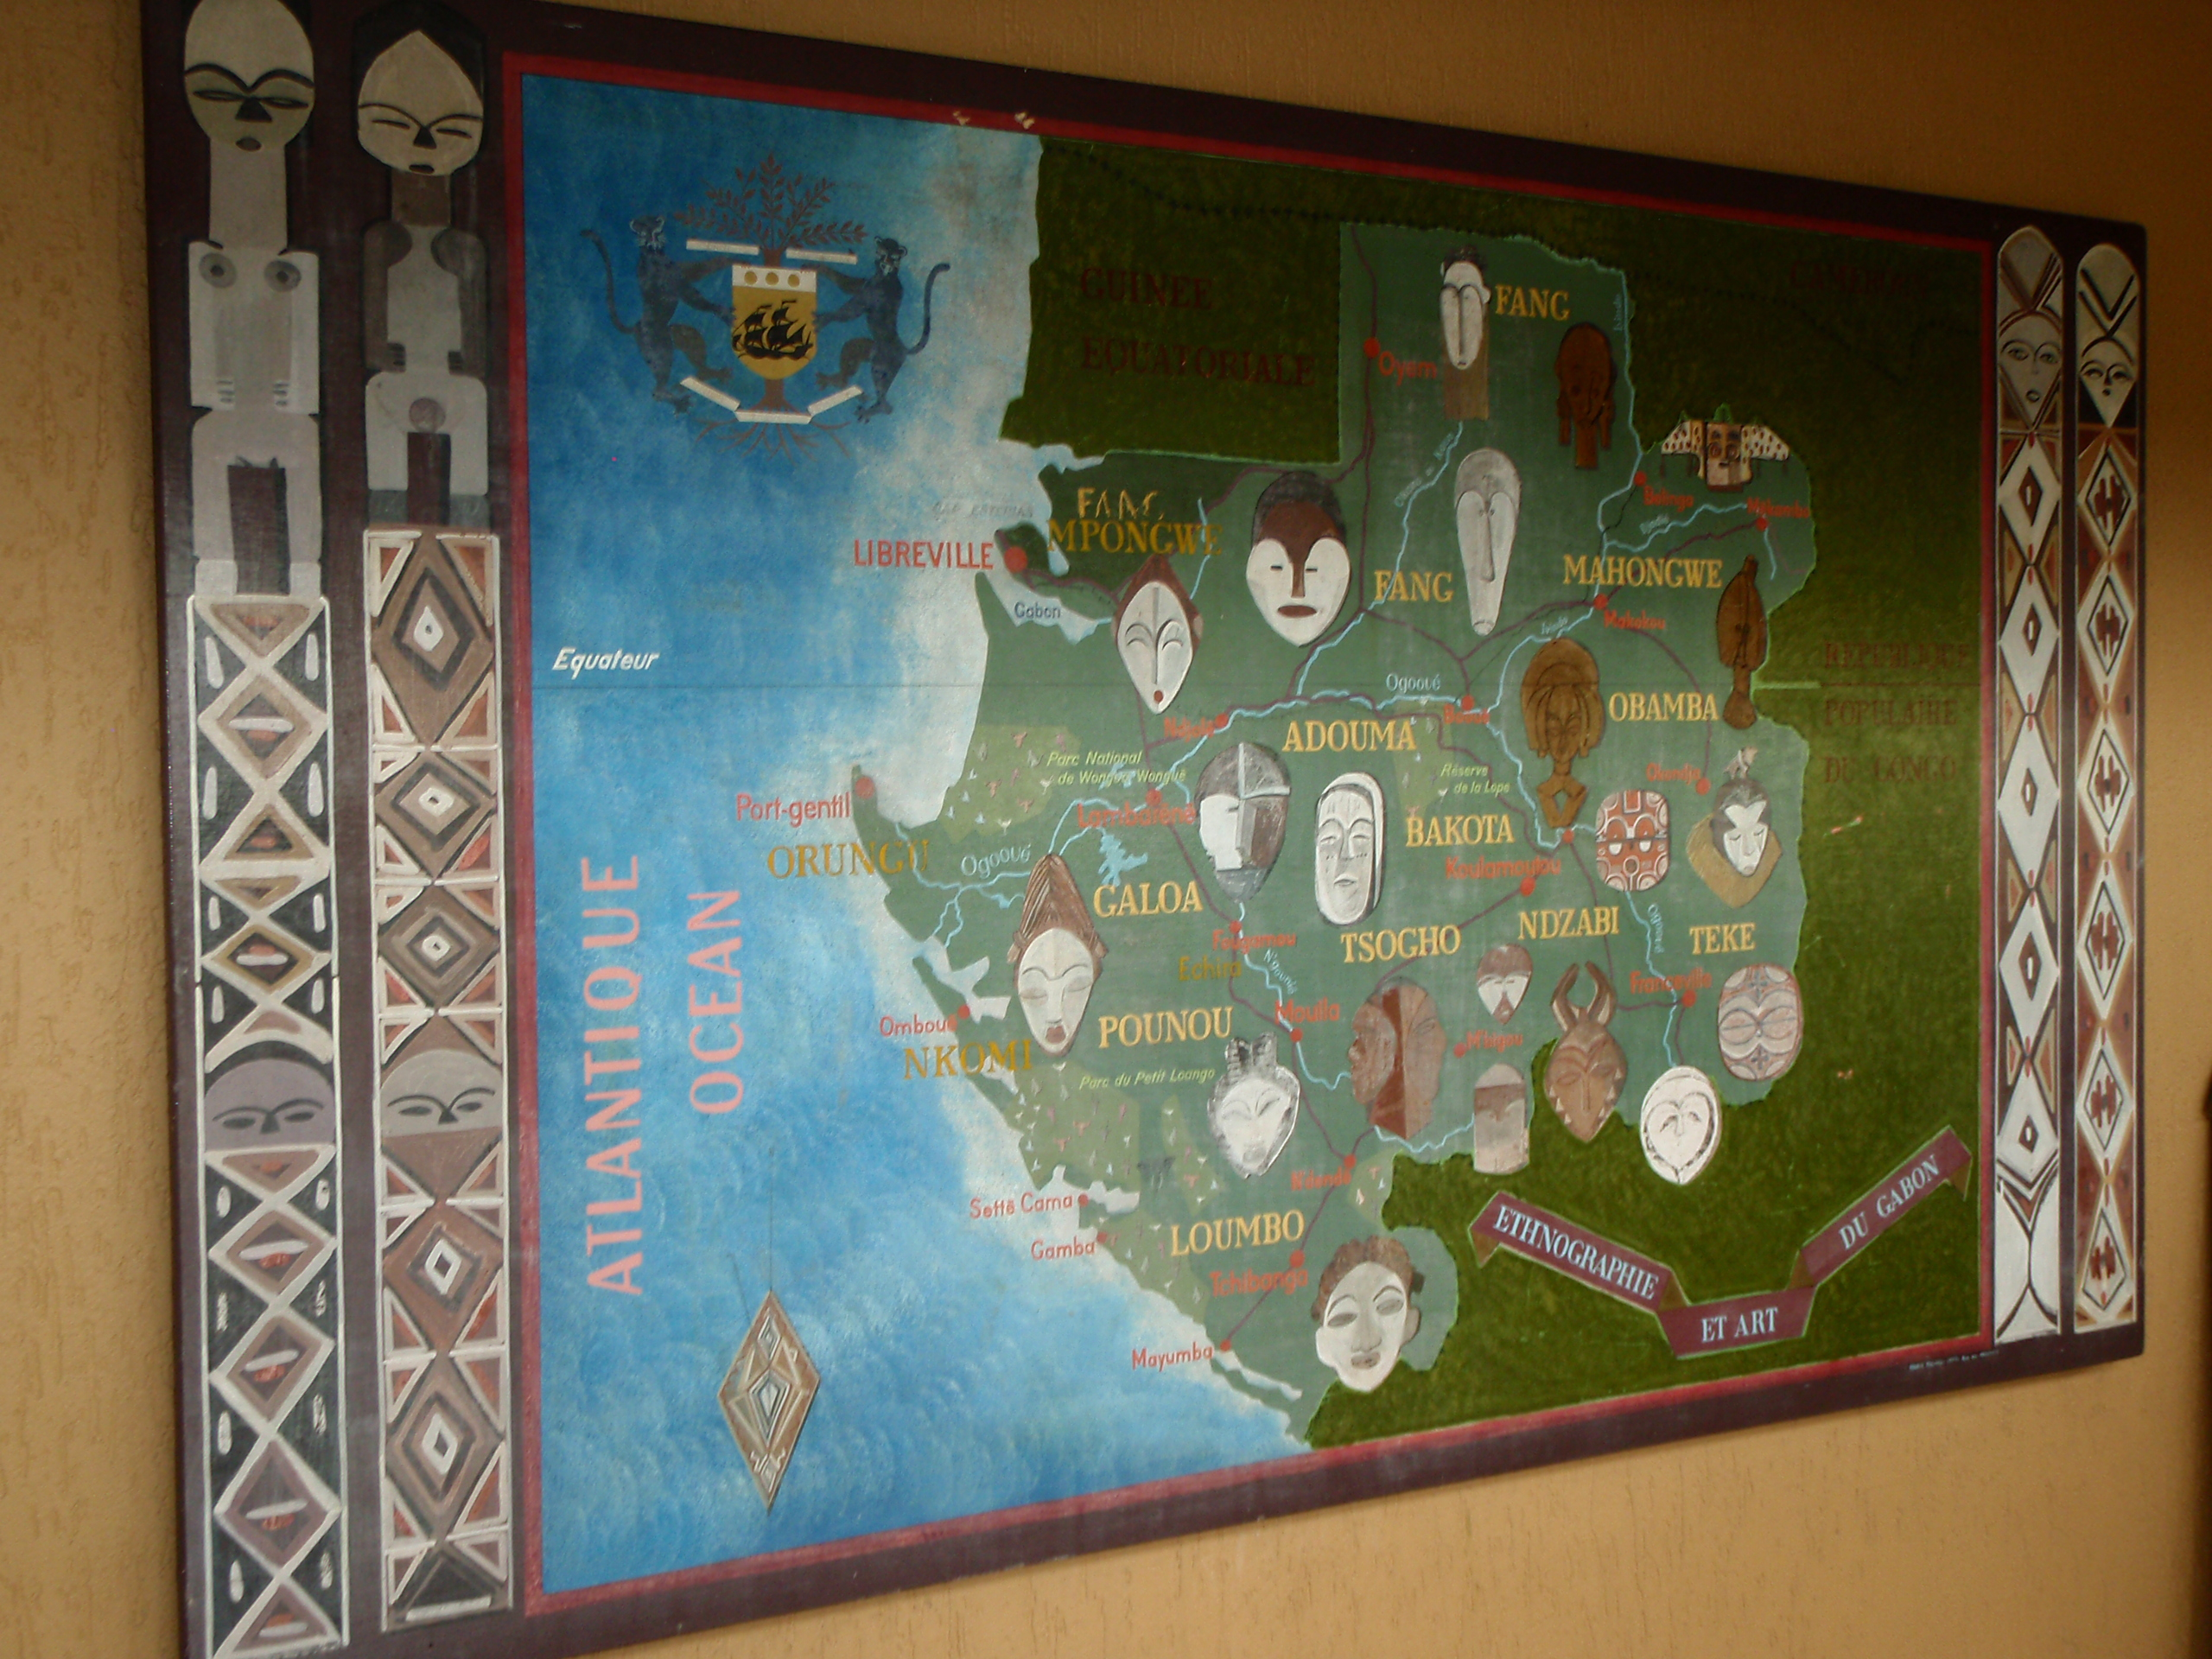 Map of African Tribes; Port Gentil, Gabon; 2010